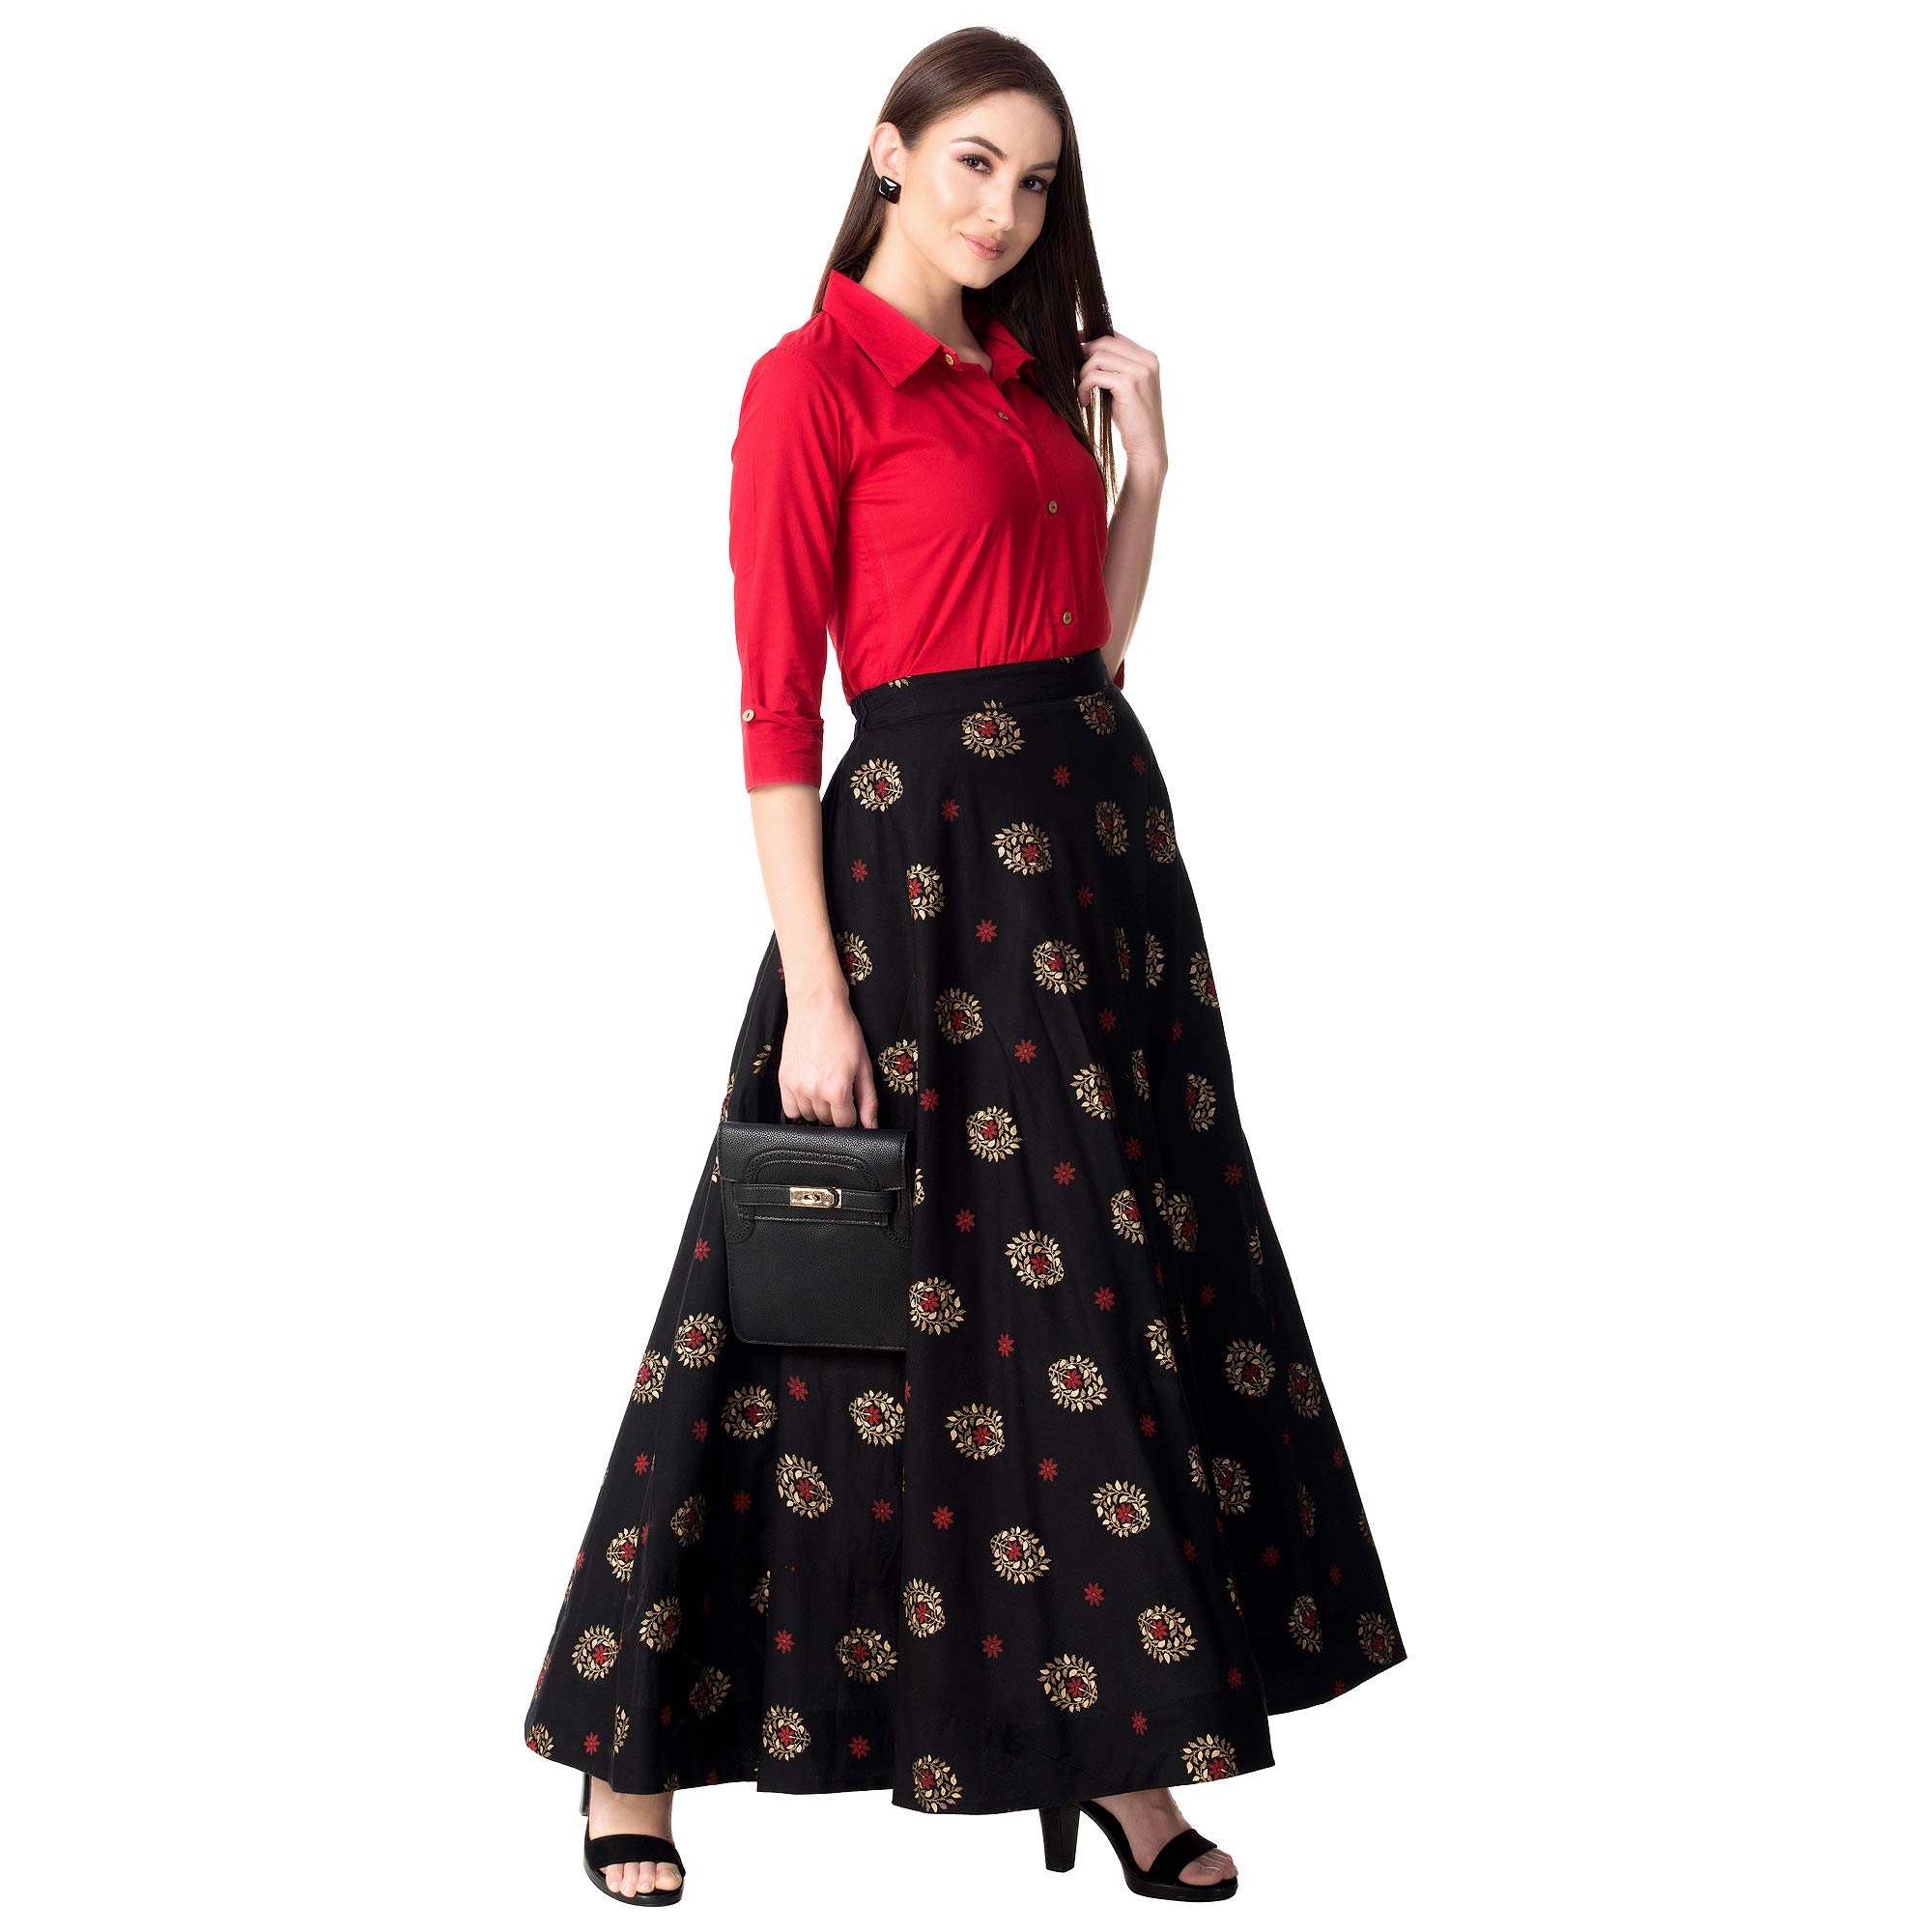 fcc59c21e Khushal K Women's Rayon Party Wear Top With Long Skirt Set - We Shop ...